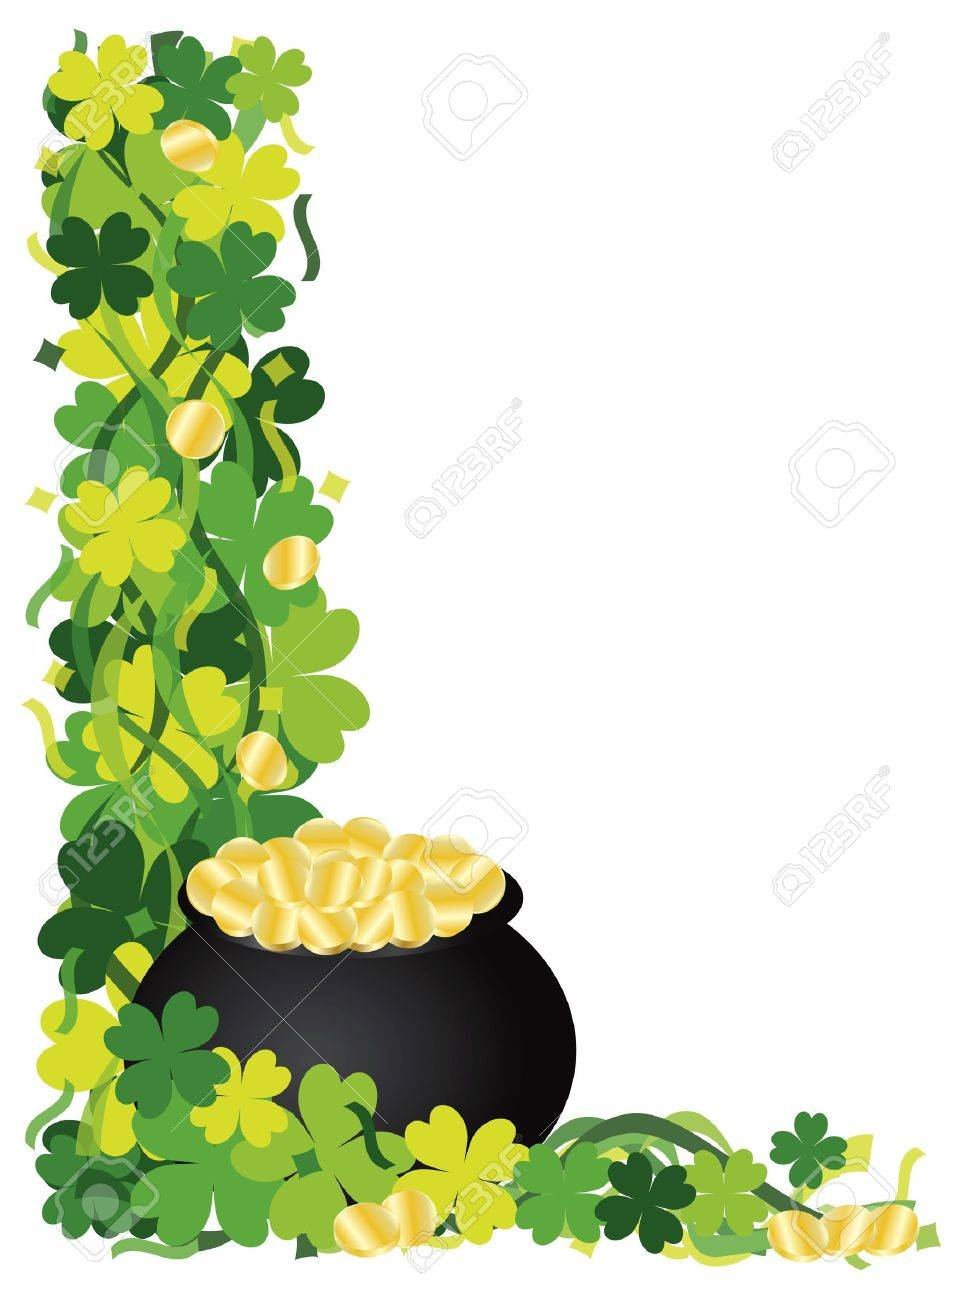 st patricks day irish lucky four leaf clover with pot of gold